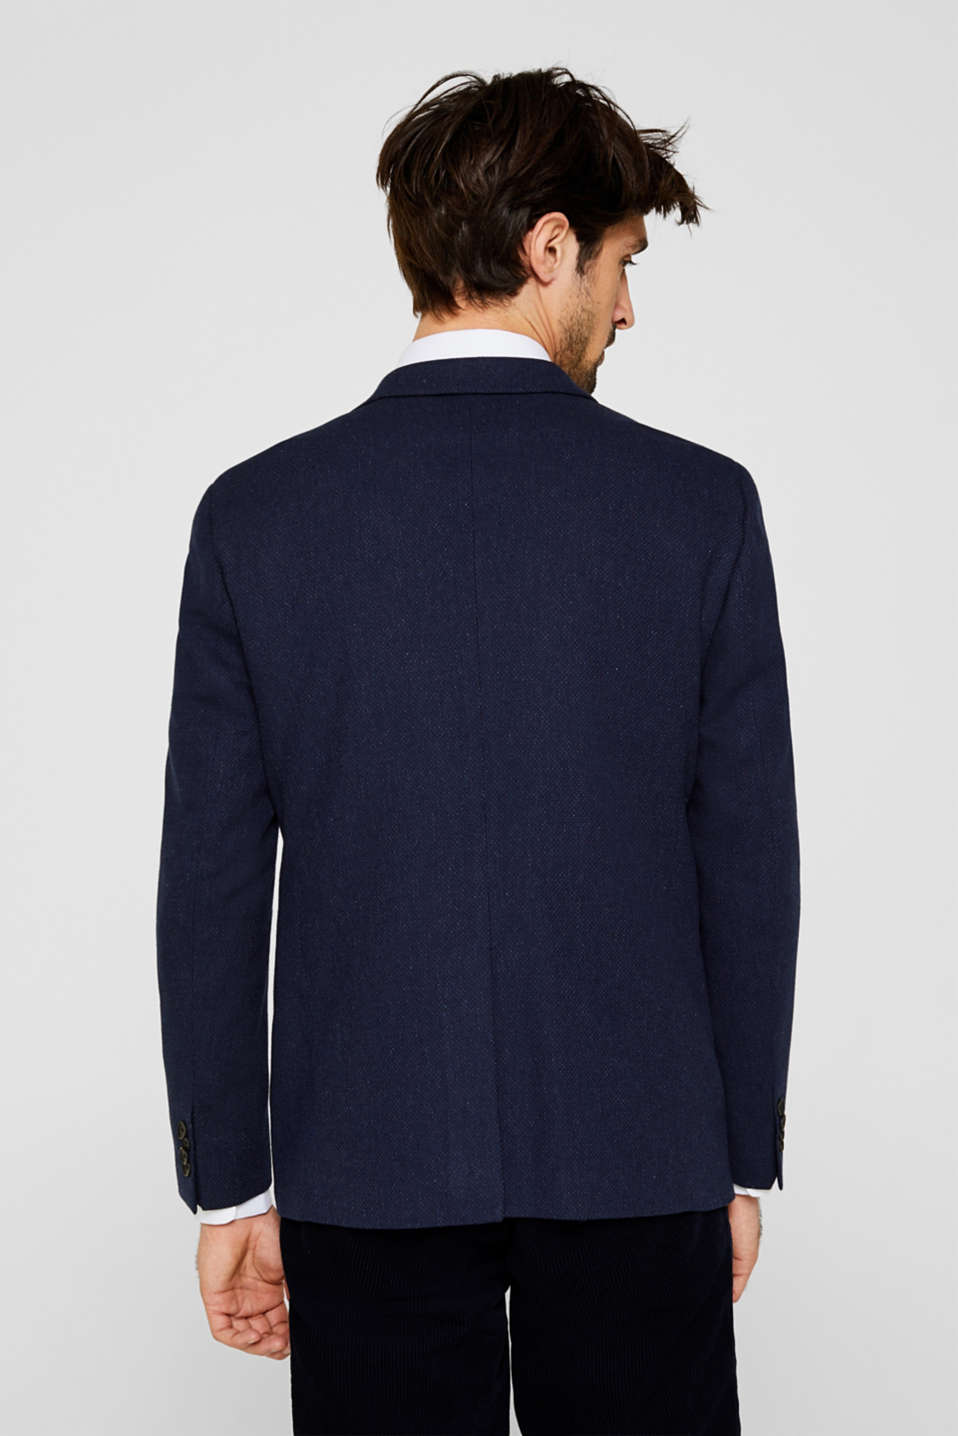 With wool: textured jacket, DARK BLUE, detail image number 3